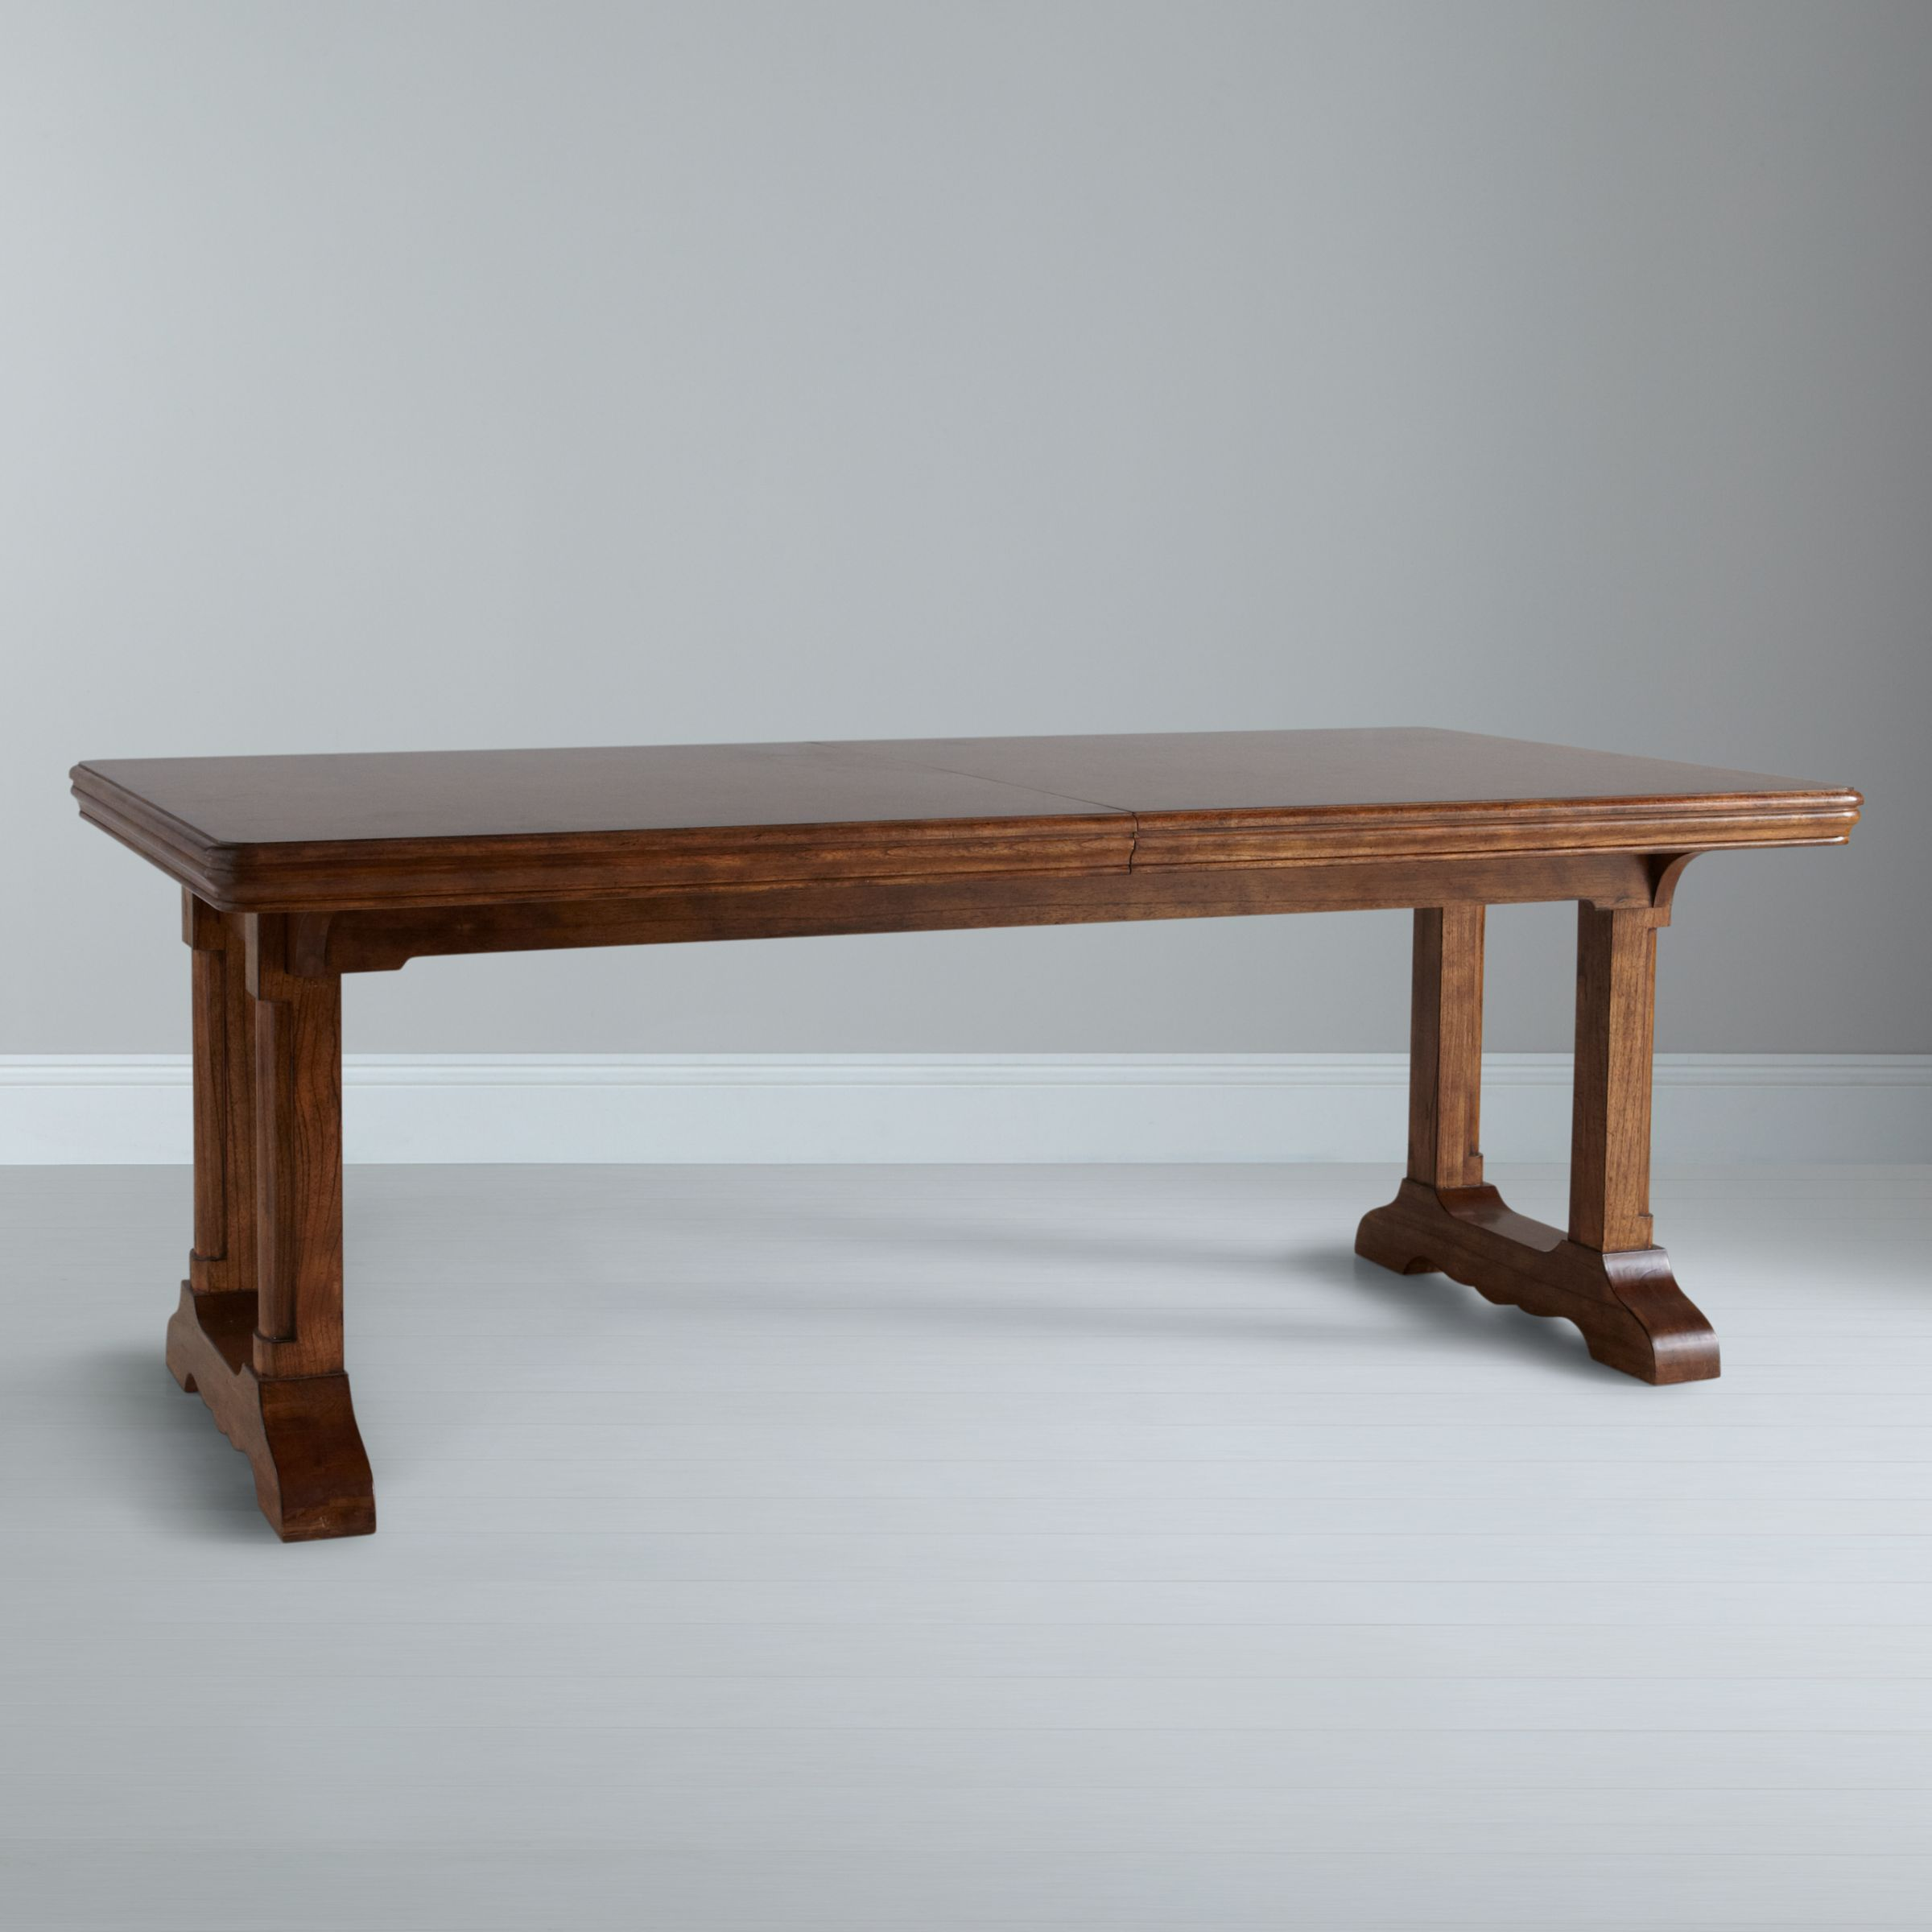 john lewis oak dining tables reviews : 230727601 from www.comparestoreprices.co.uk size 2400 x 2400 jpeg 197kB